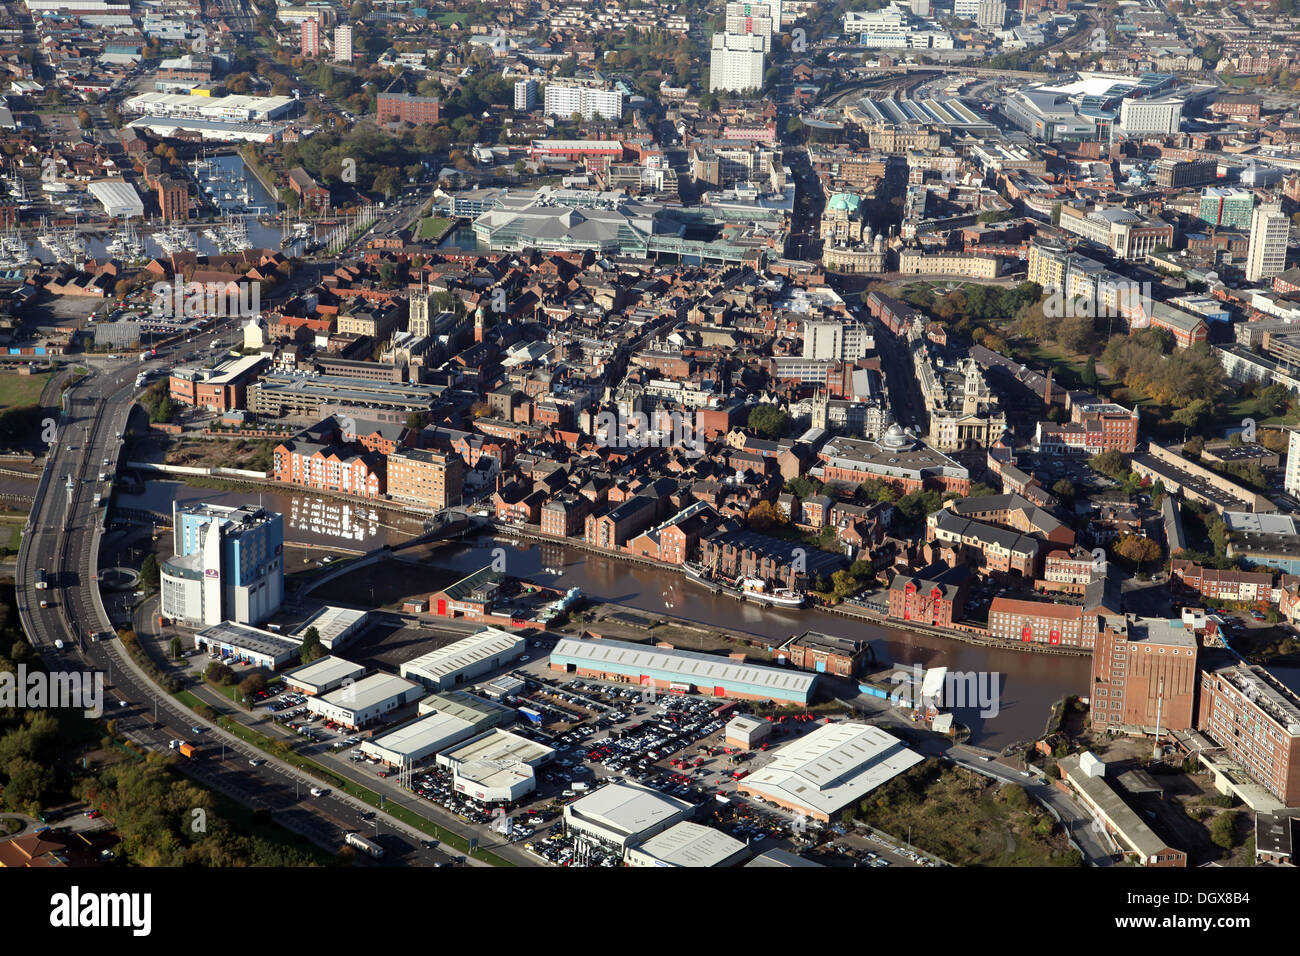 aerial view of Hull, from the east looking west across the River Hull waterfront Stock Photo